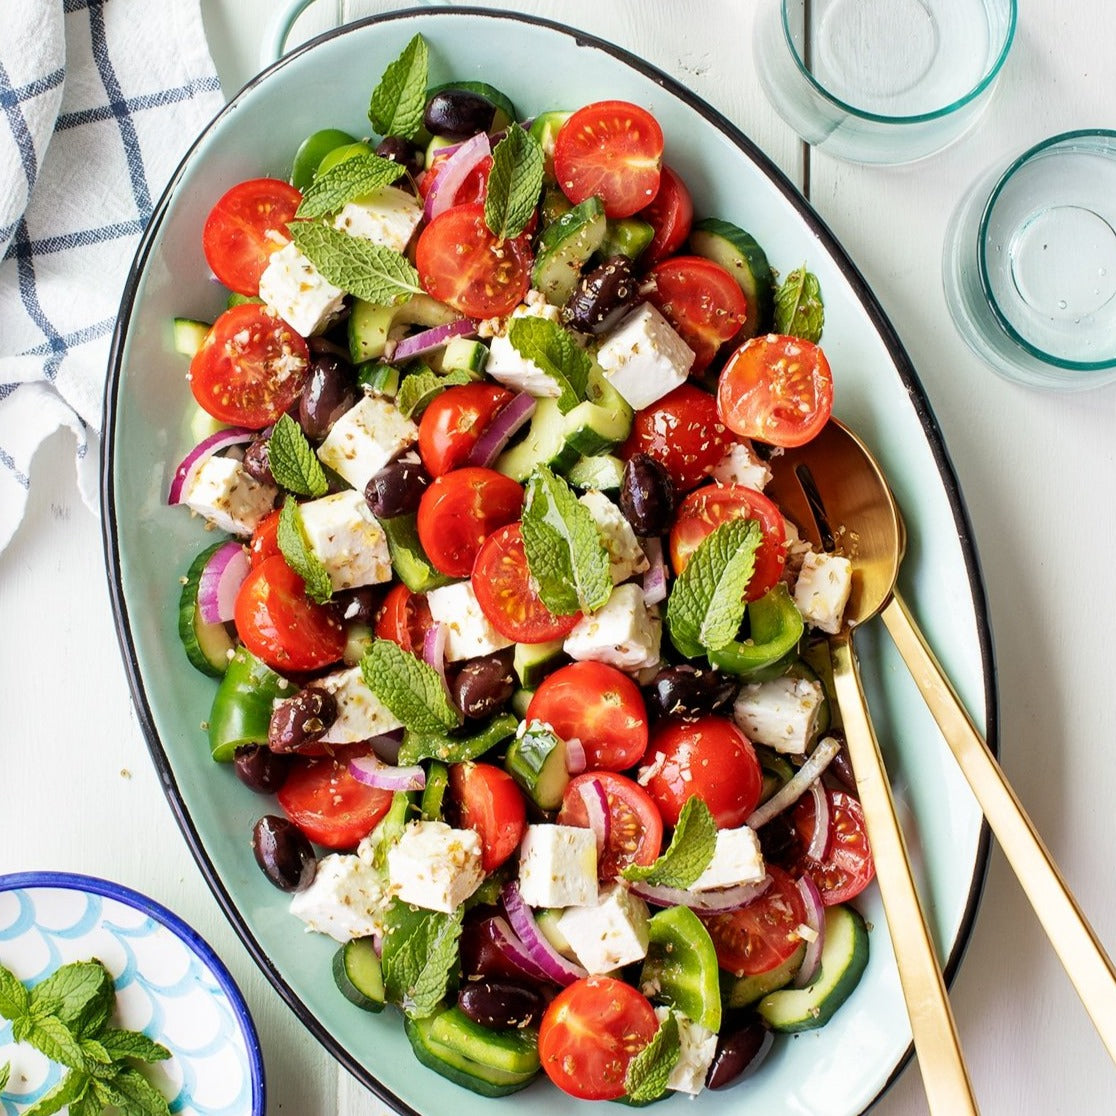 Romaine, feta, olive and tomato salad (2-3 people)